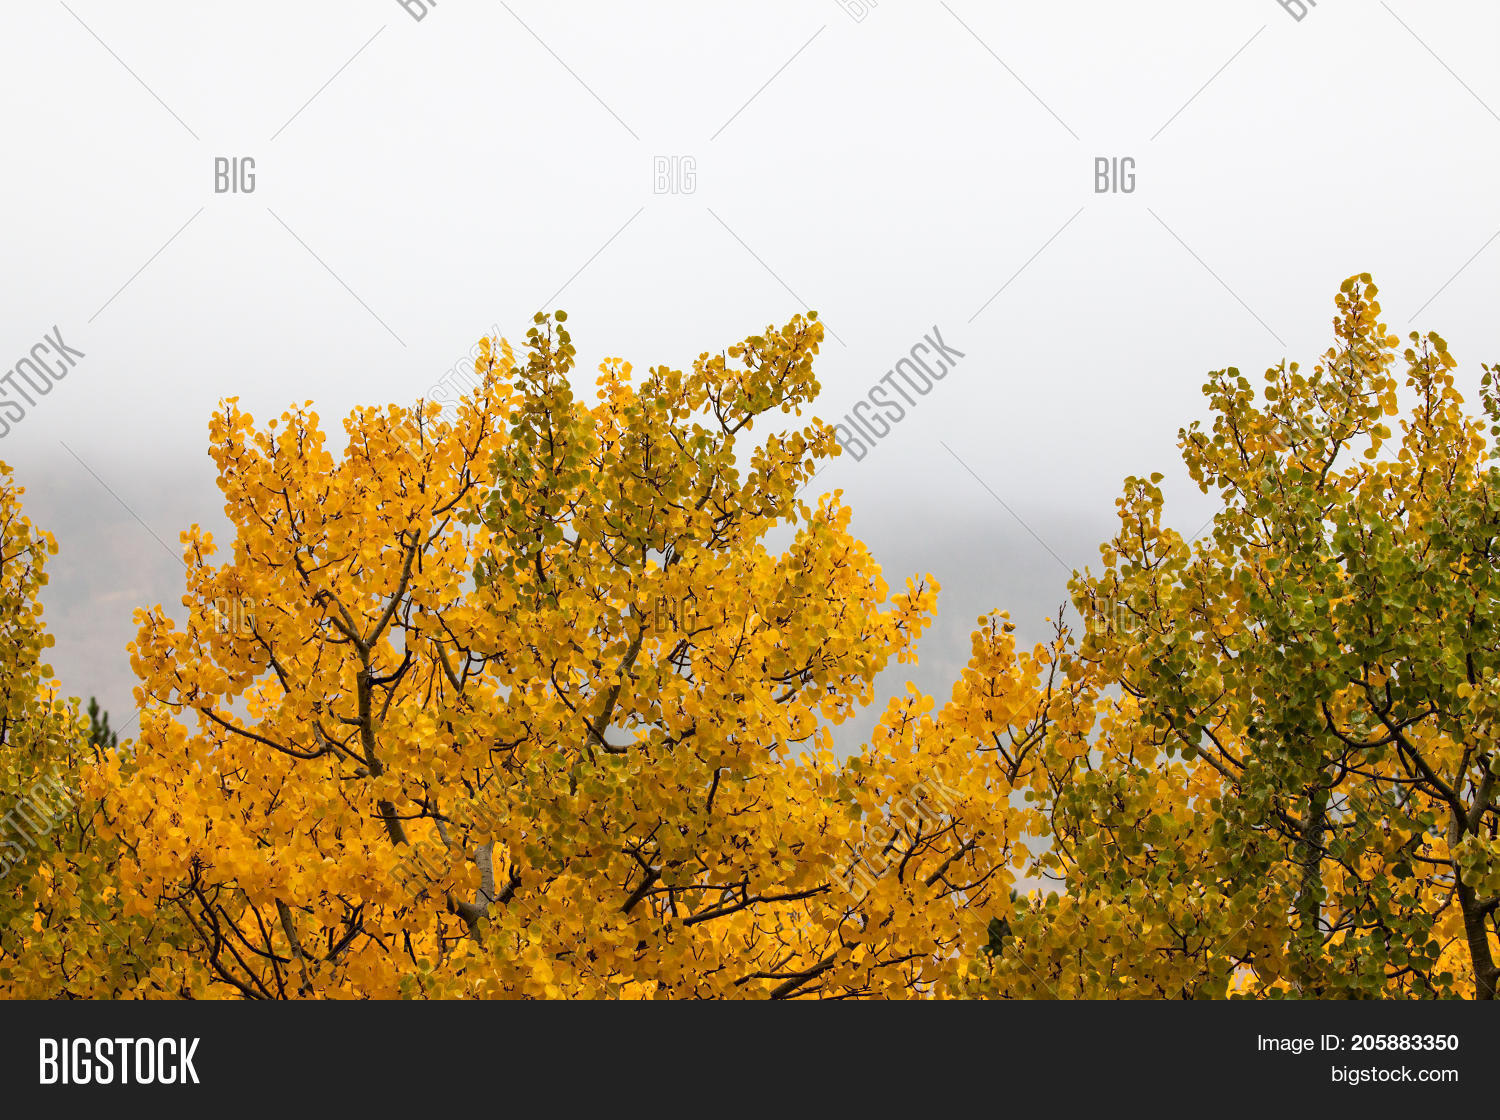 Aspen leaves changing from green to golden in autumn in rural Montana with a foggy background.